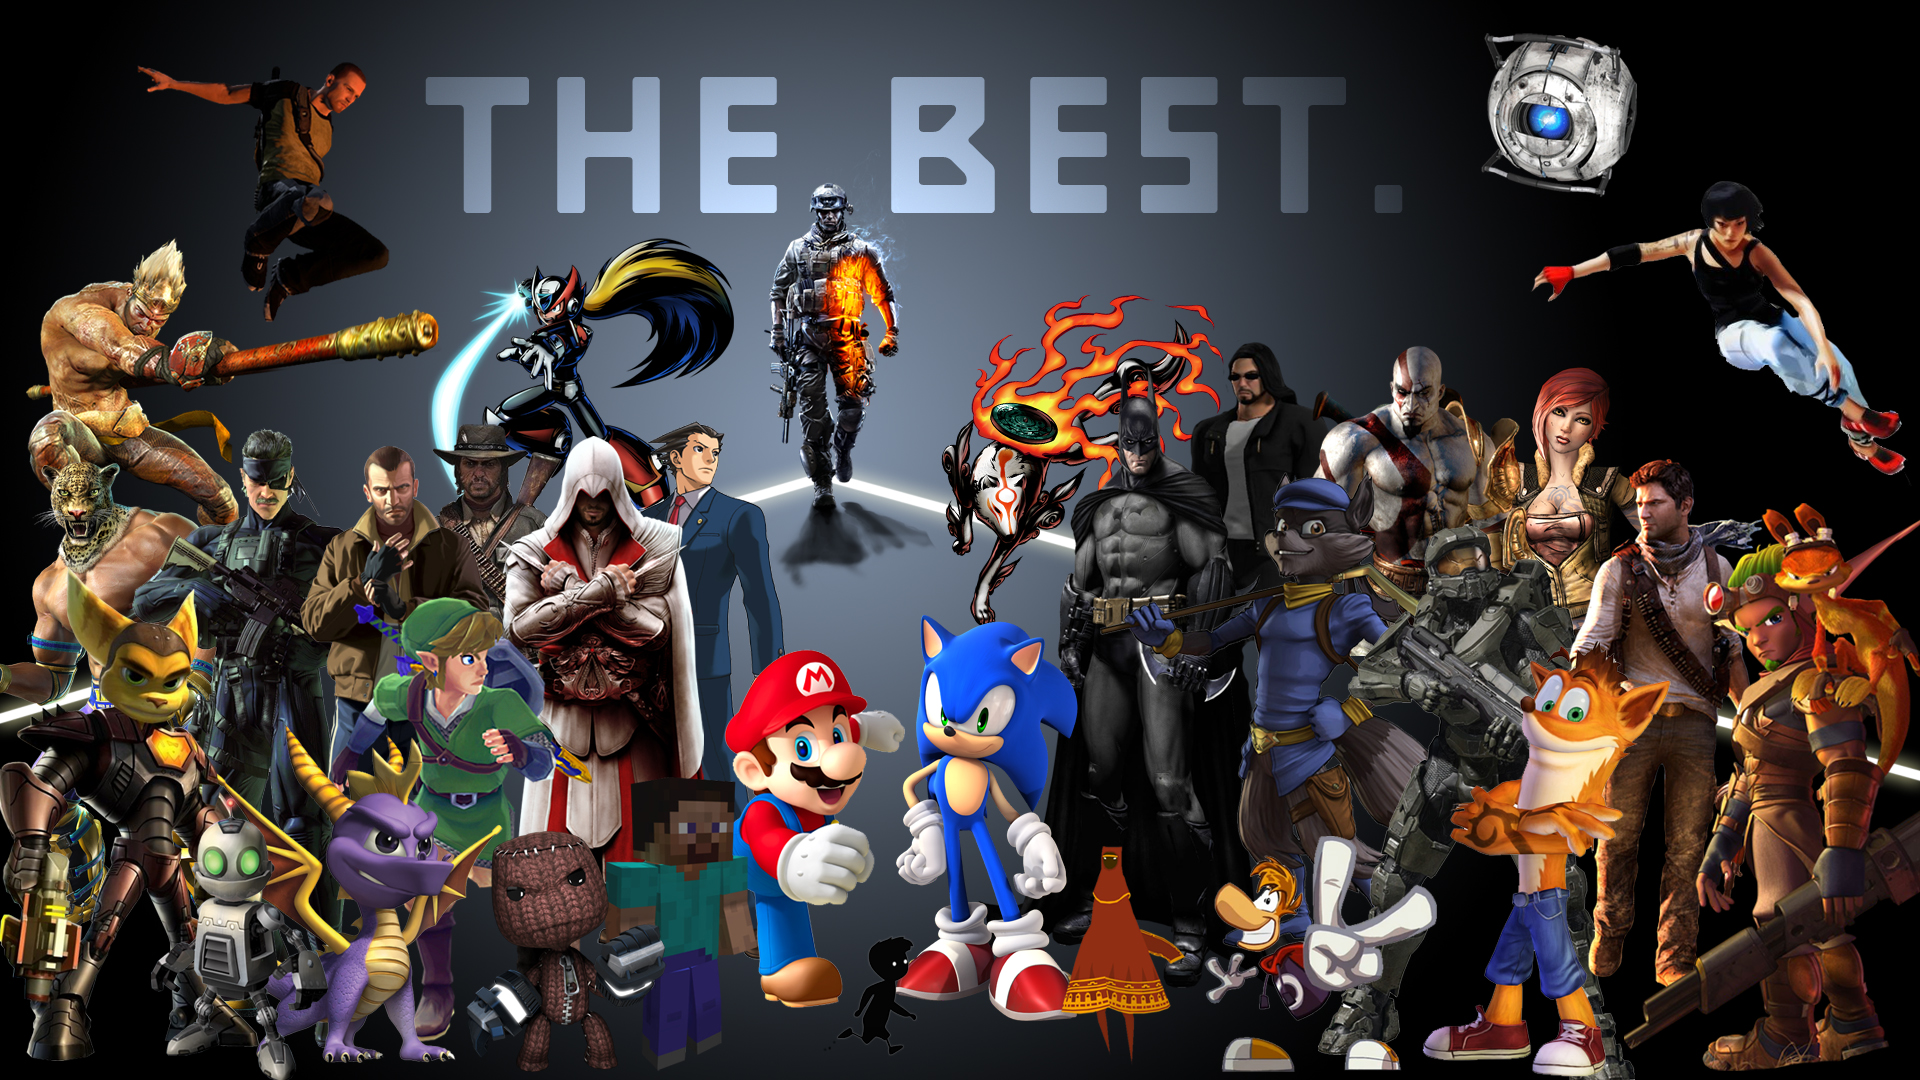 The 20 best video games of all time, according to critics ...